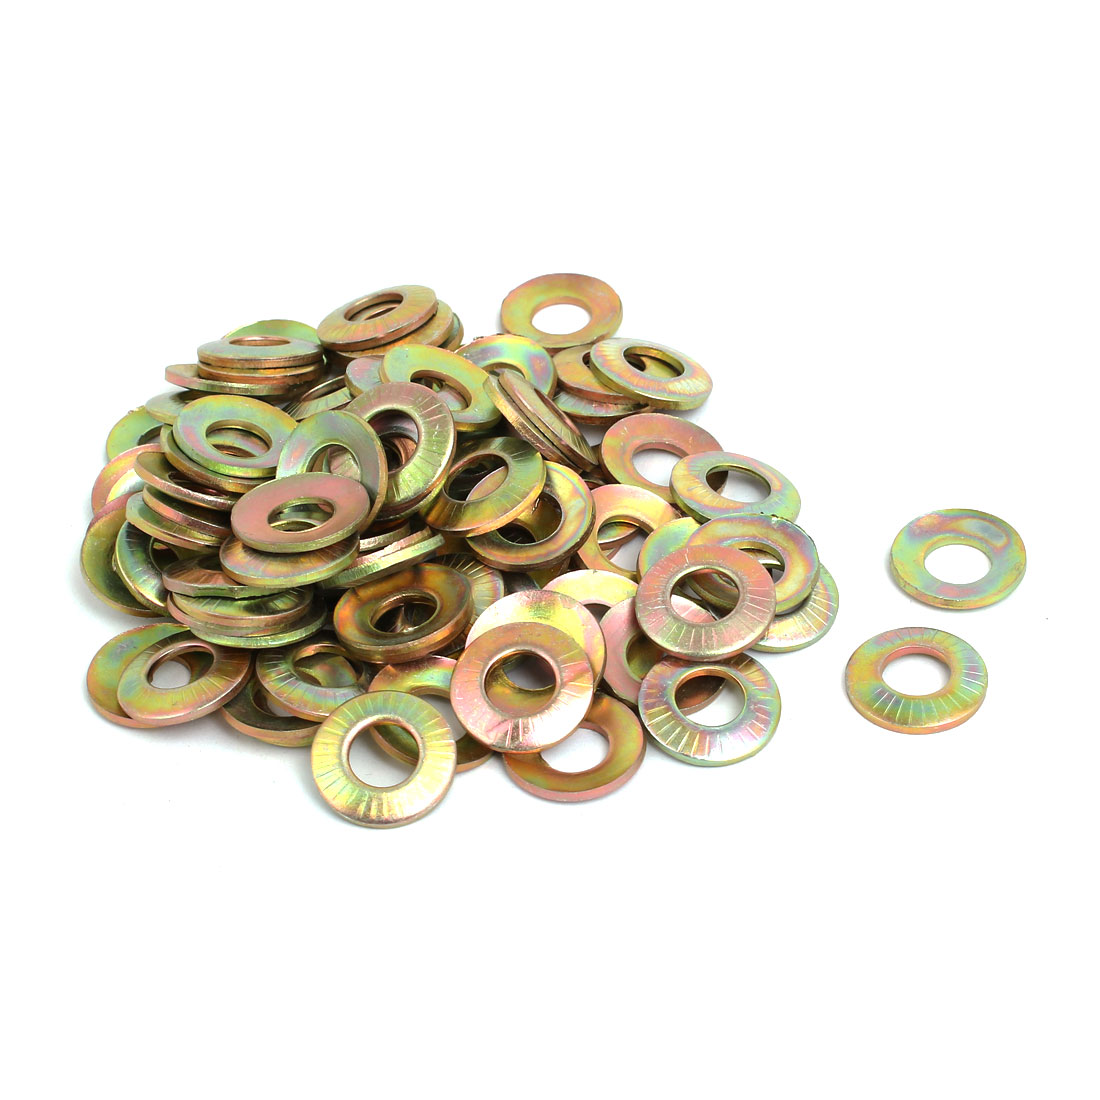 M8 Inner Dia Carbon Steel Serrated Conical Washer Bronze Tone 100pcs